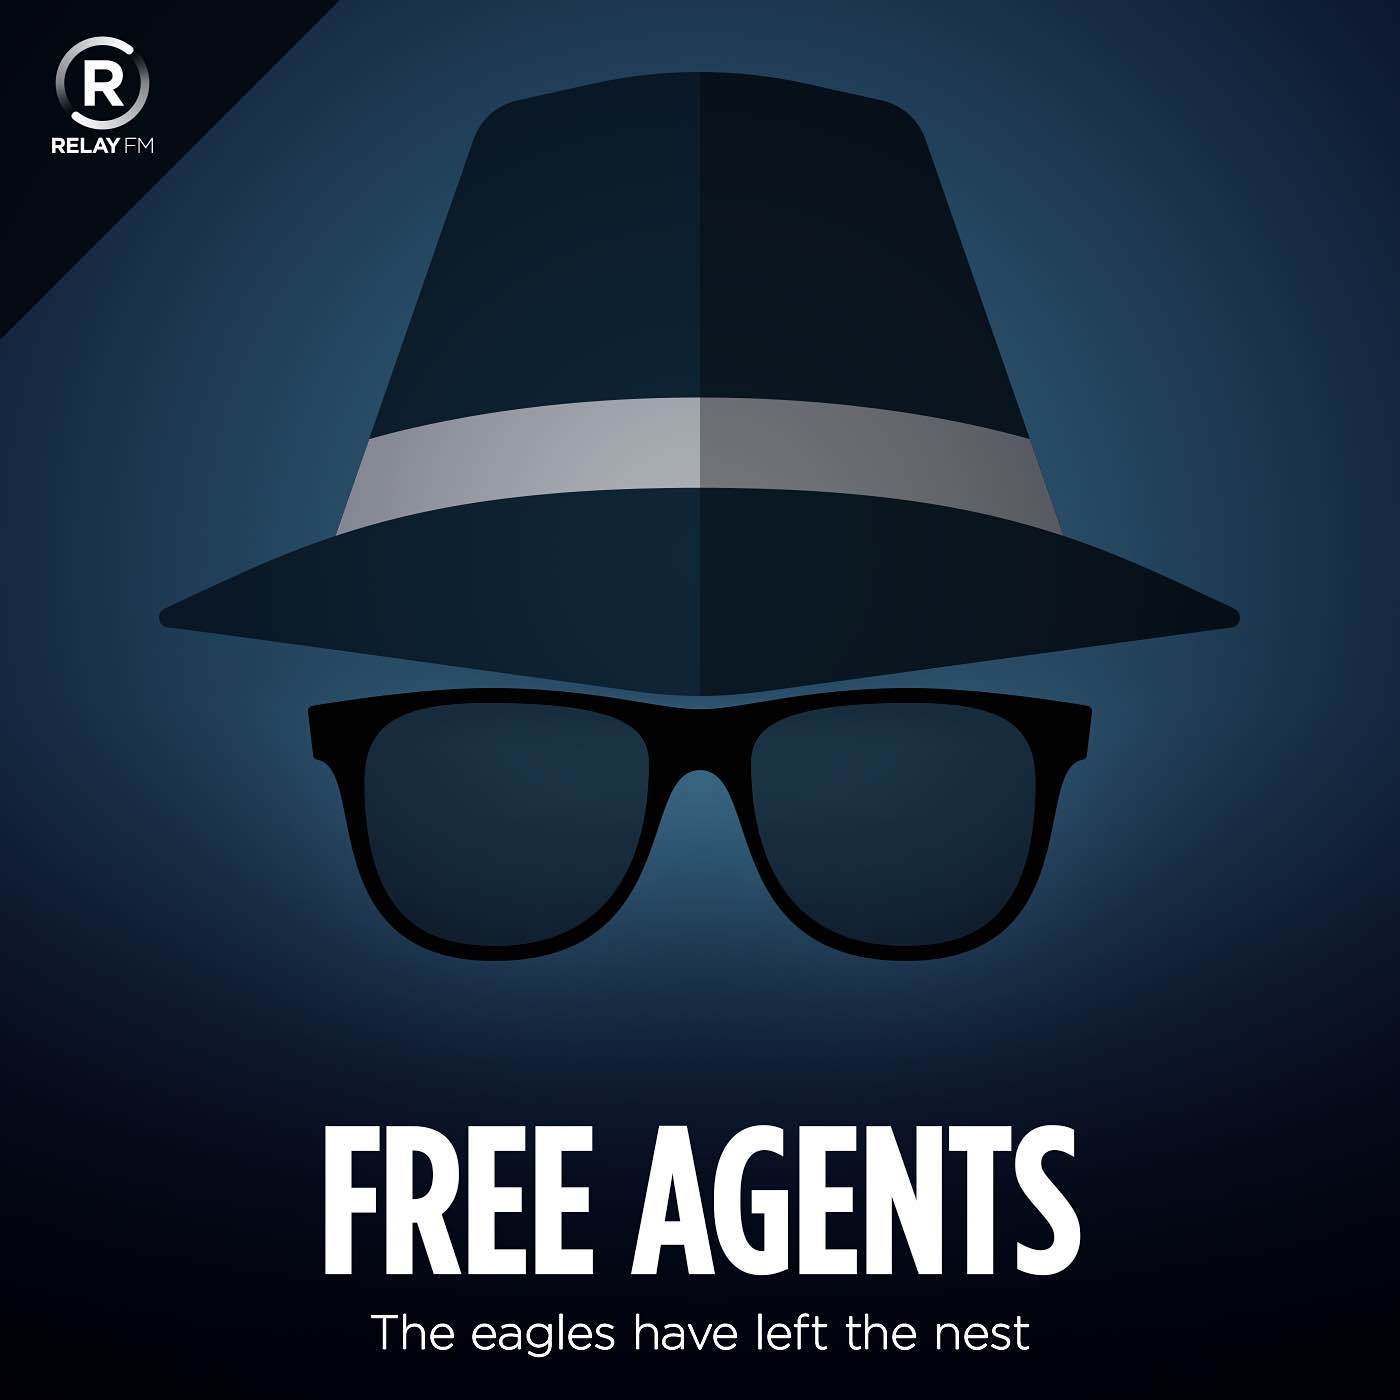 quality-linkage-relay-fm-free-agents-podcast-artwork